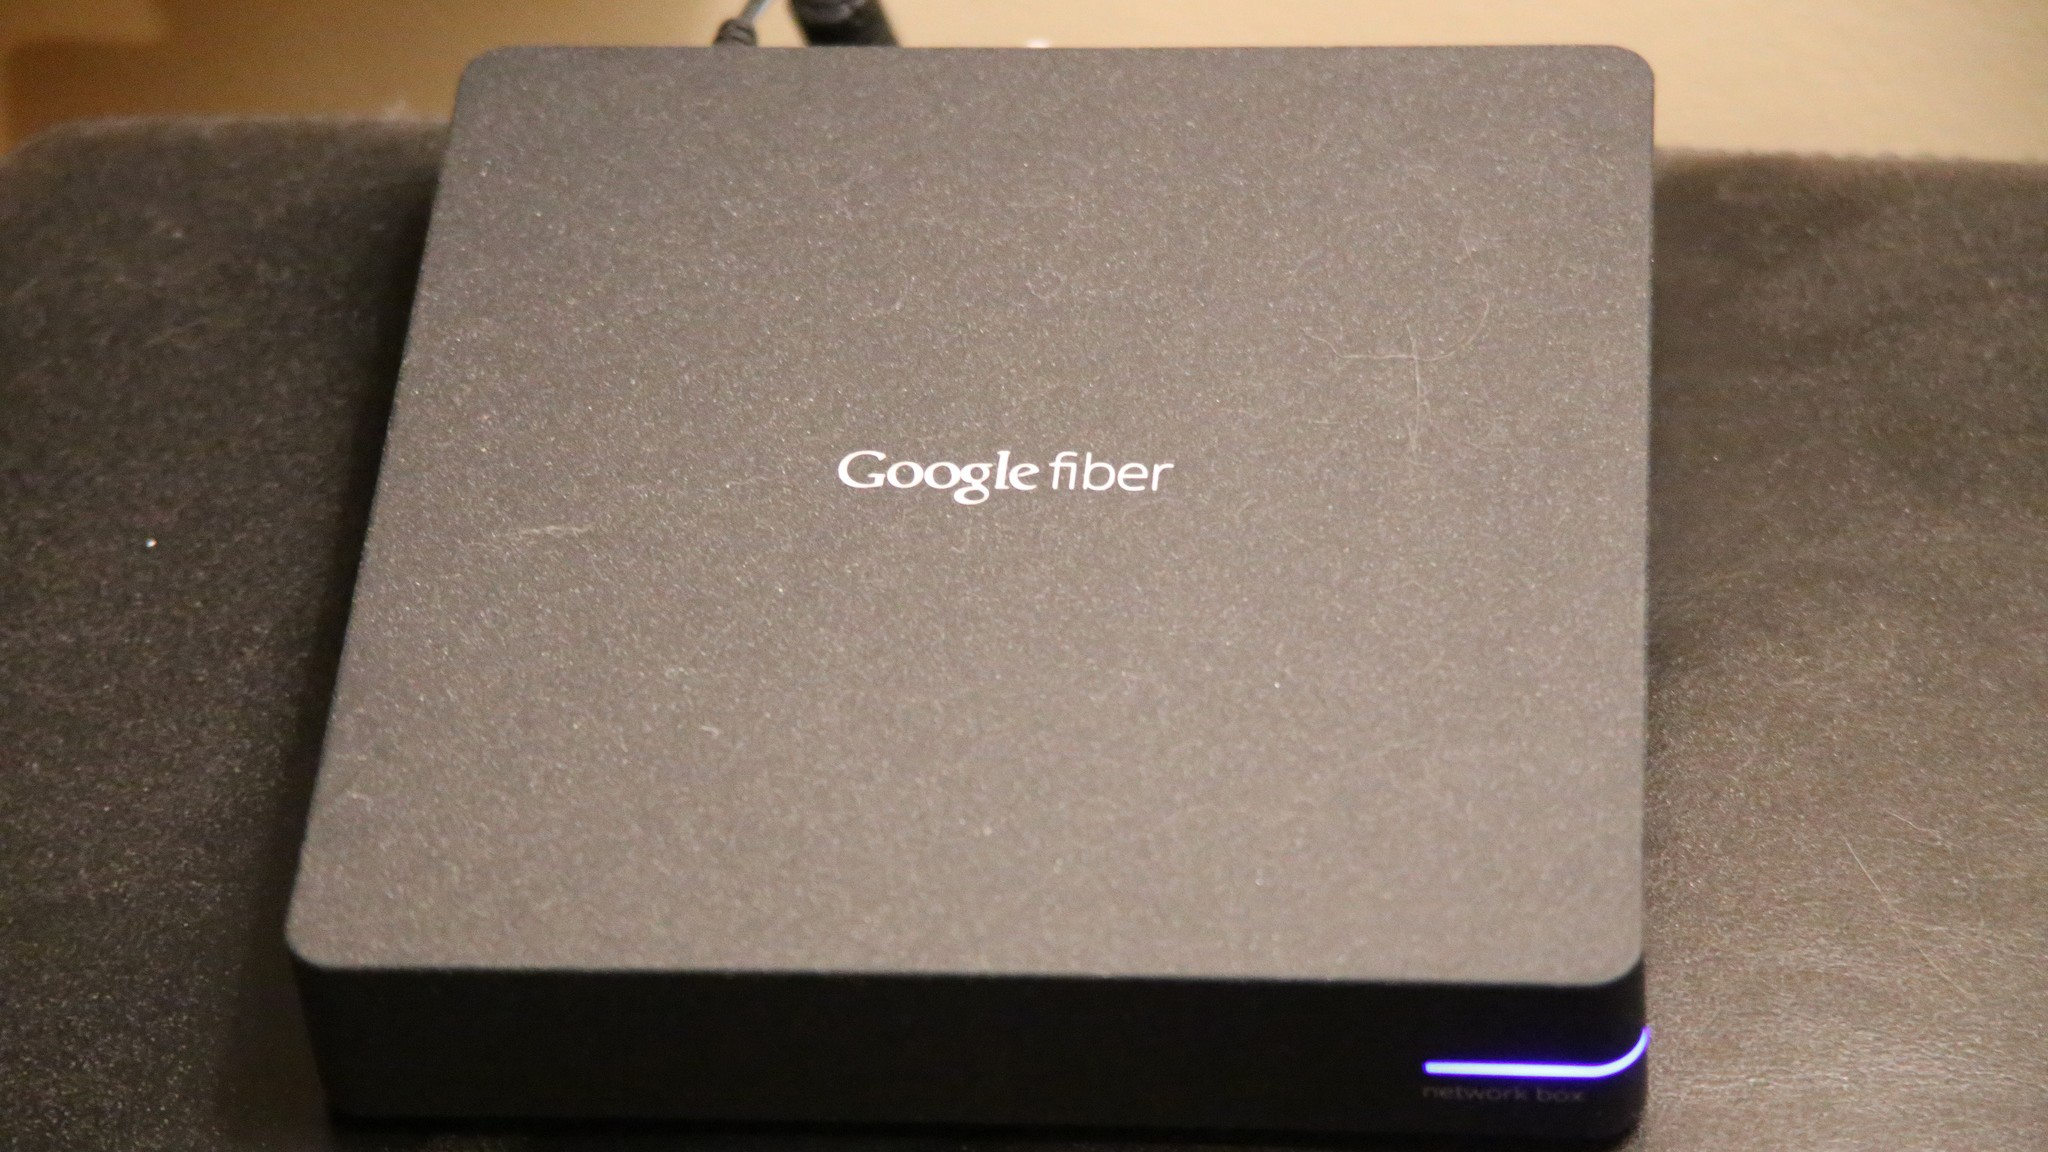 Google's Free Gigabit Internet for Public Housing Is No Replacement for Reform